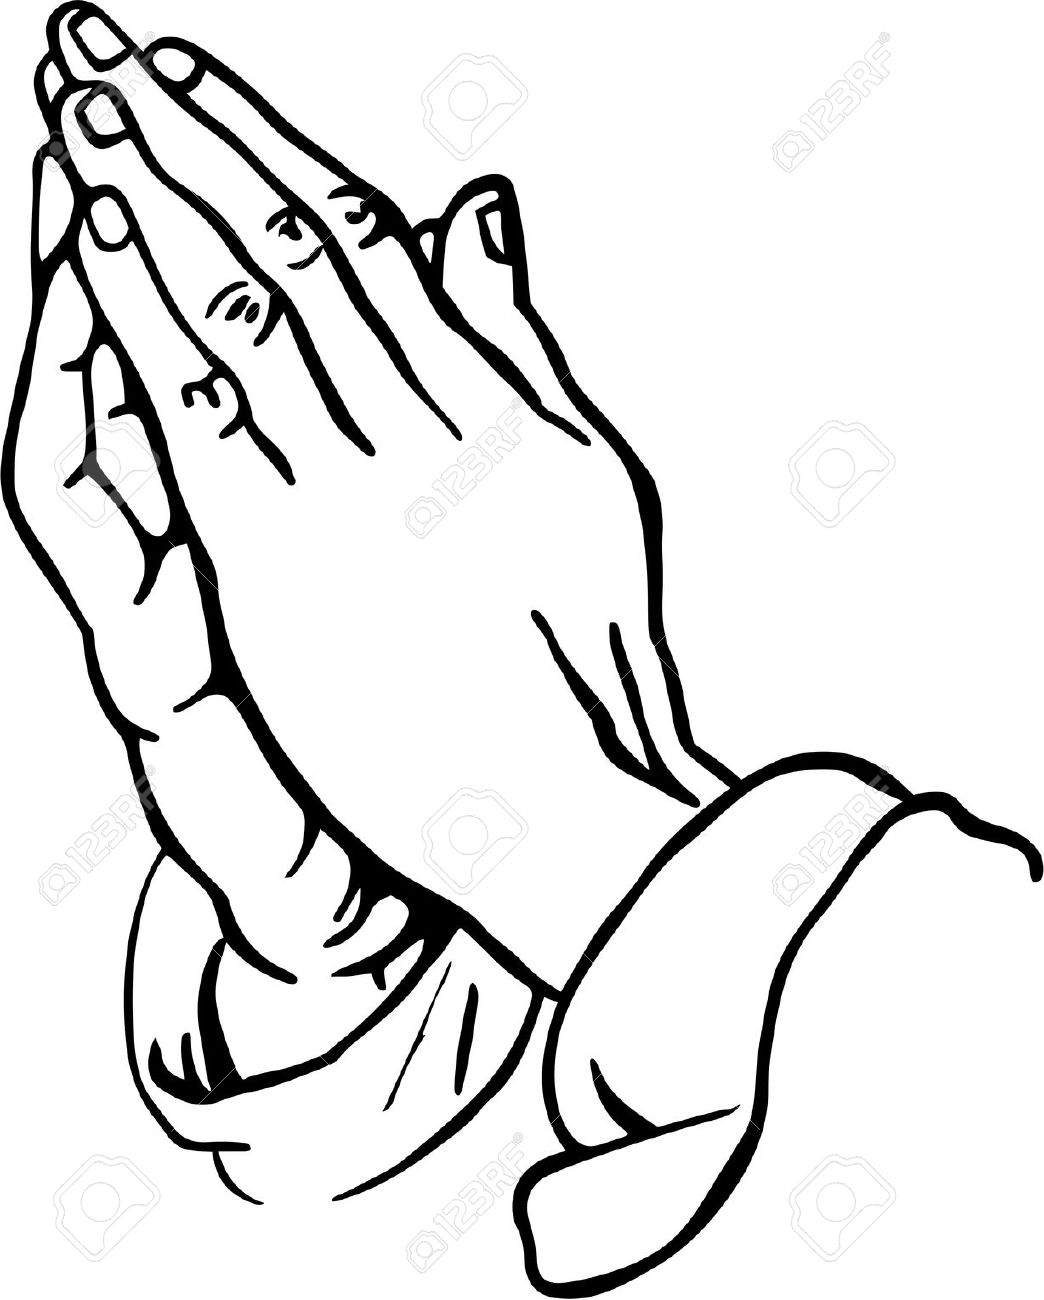 1044x1300 Praying Hands Clipart Stock Photo, Picture And Royalty Free Image